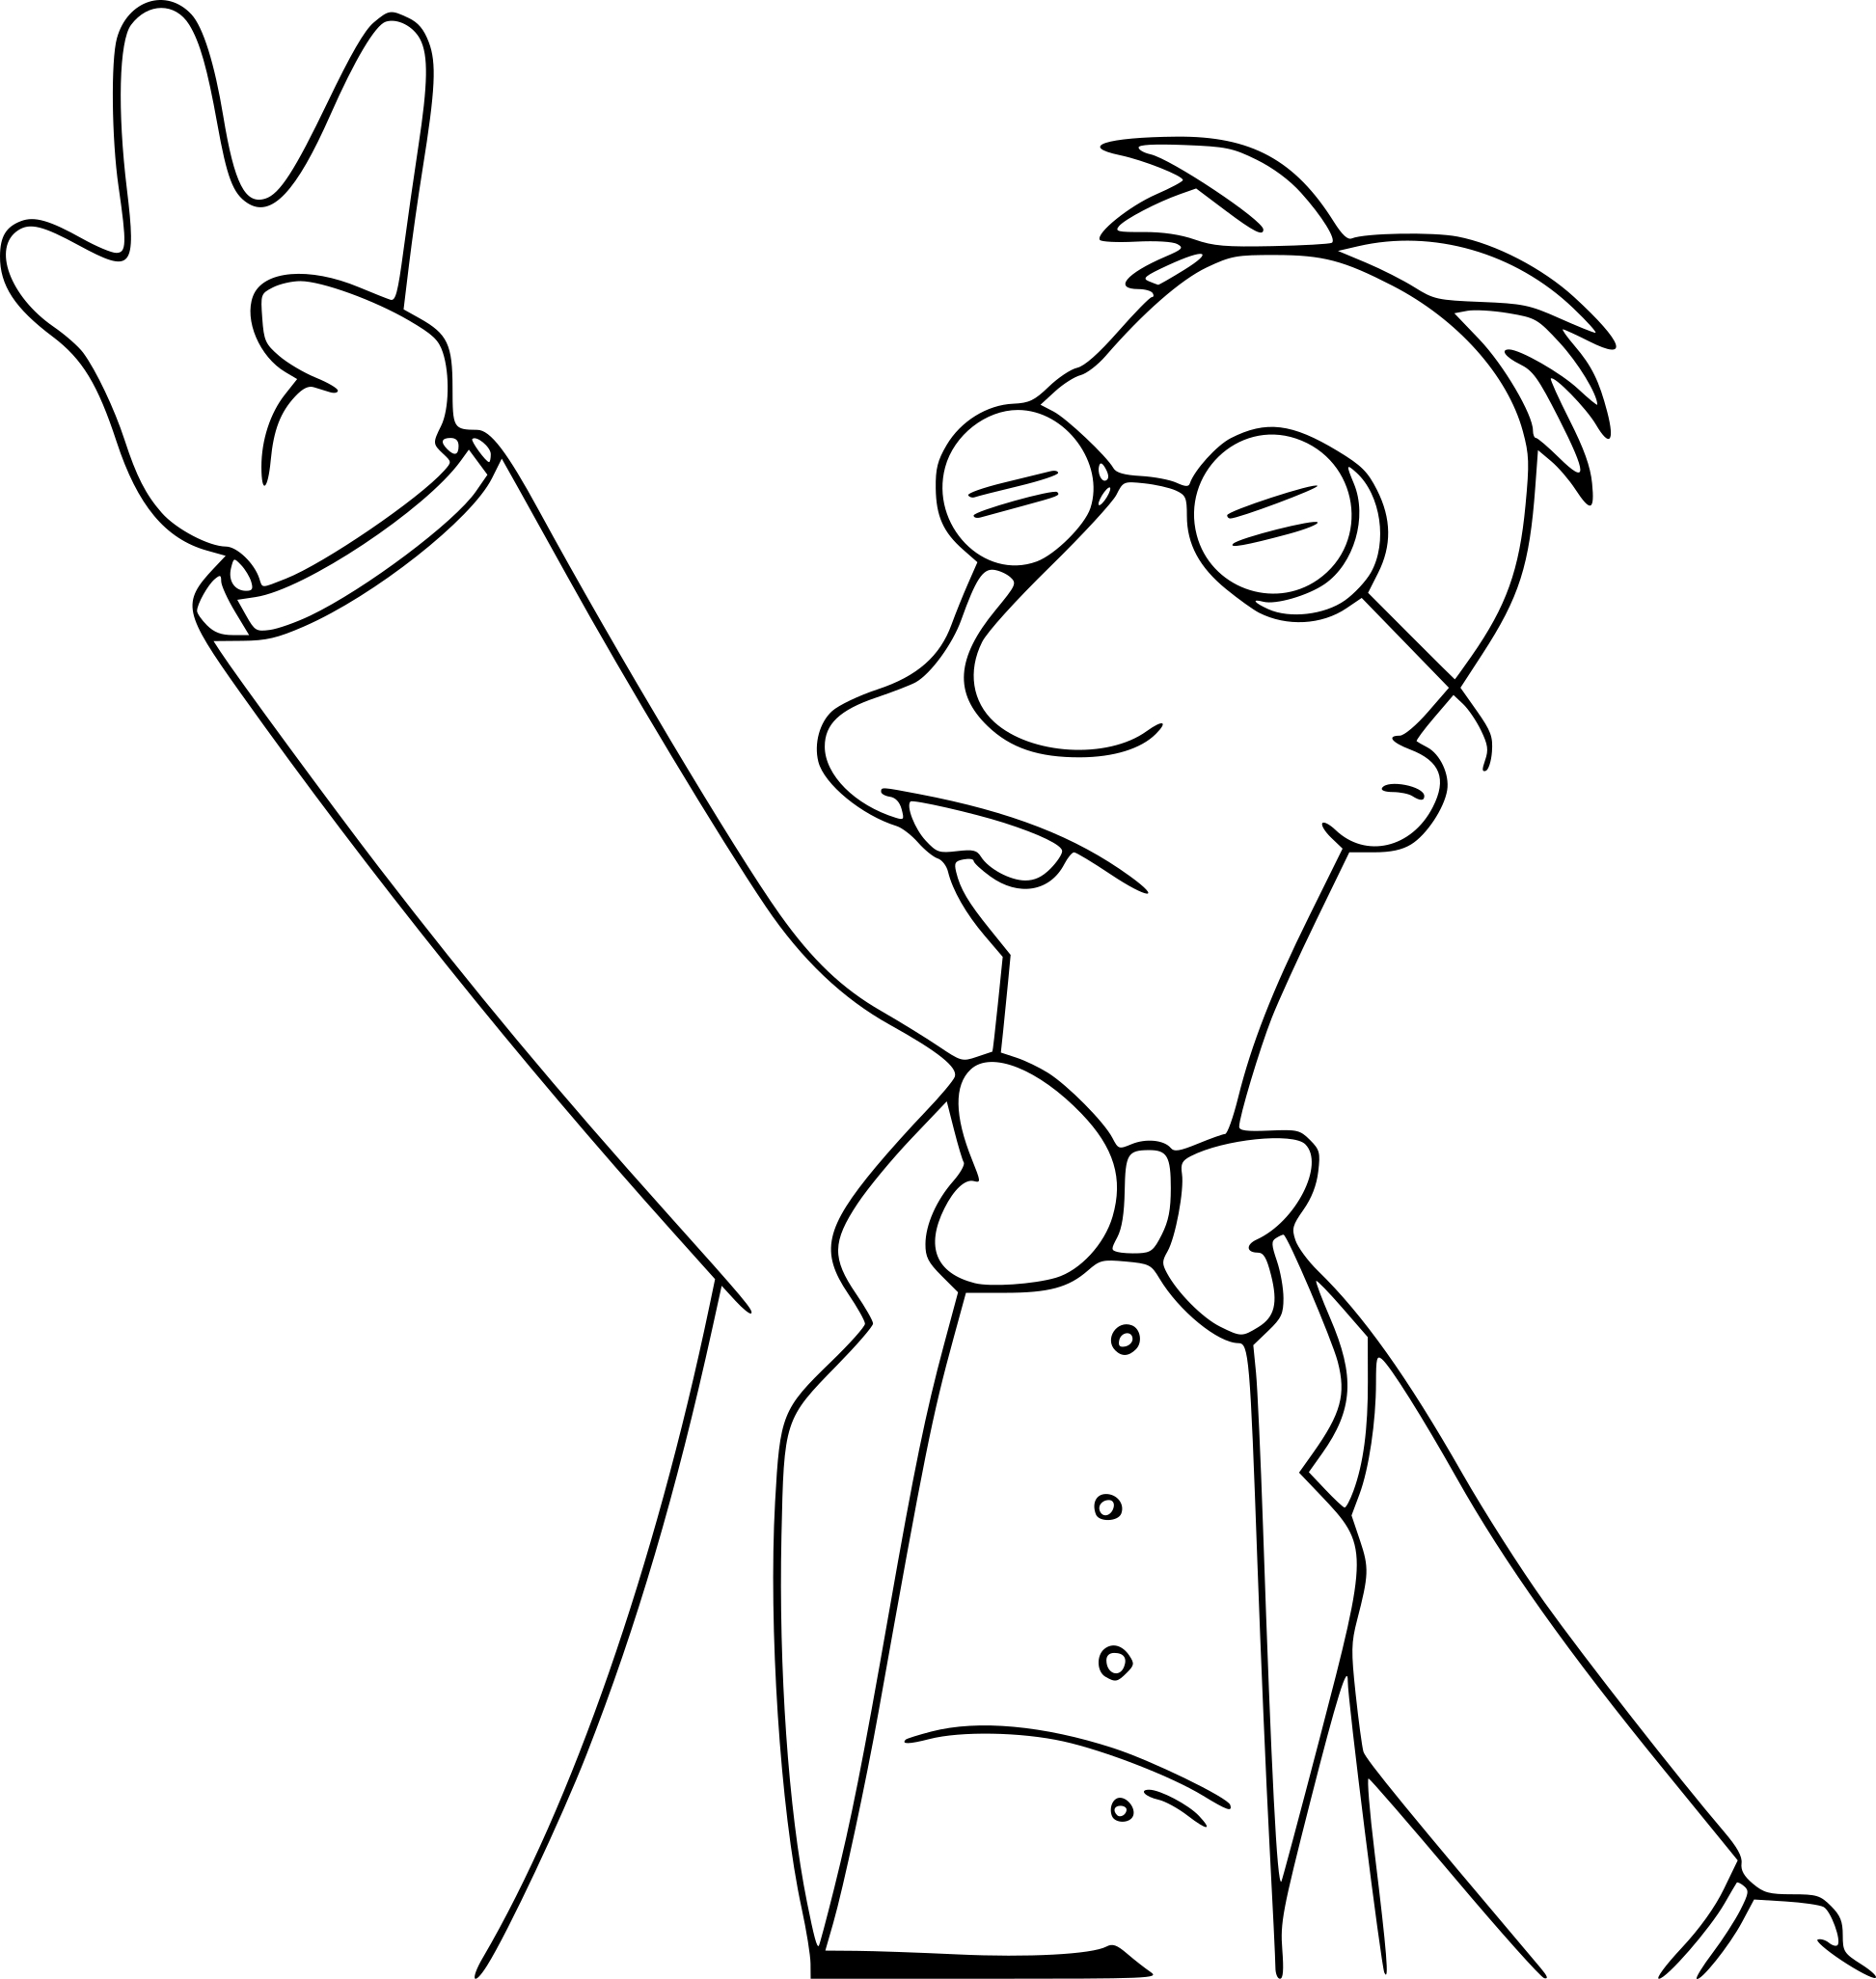 Coloriage Simpson professeur Frink